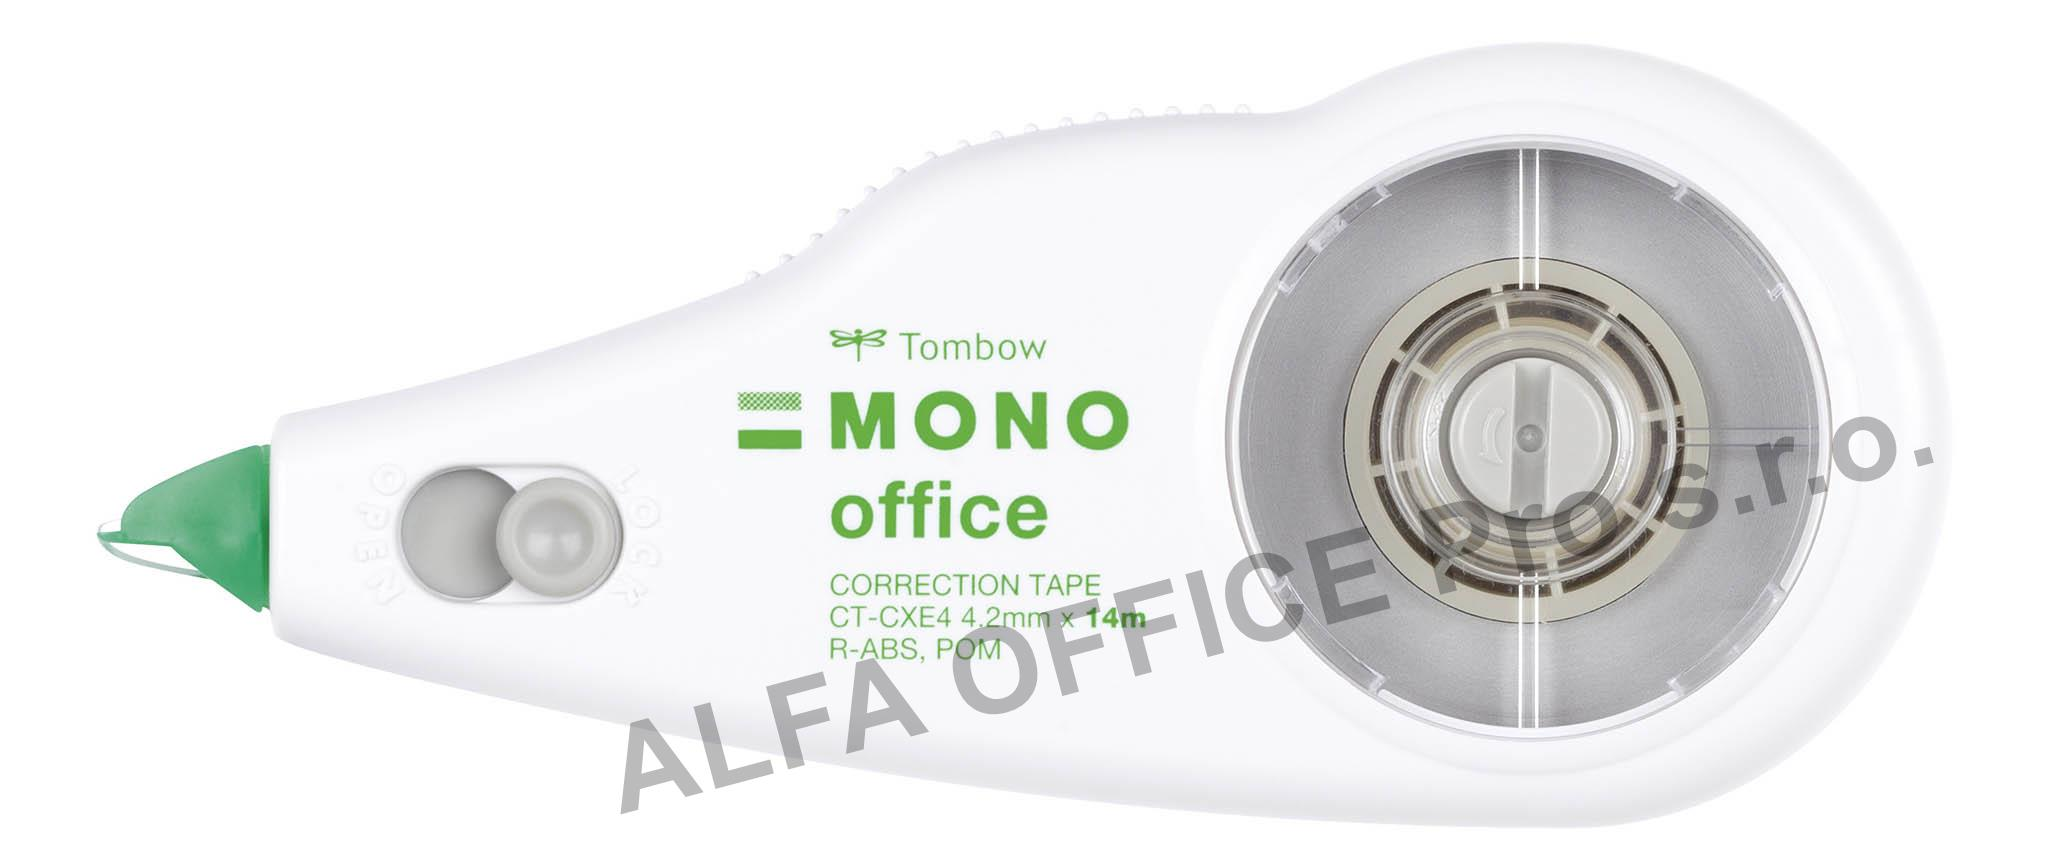 Opravný roller Tombow Mono Office -  roller 4,2 mm x 14 m